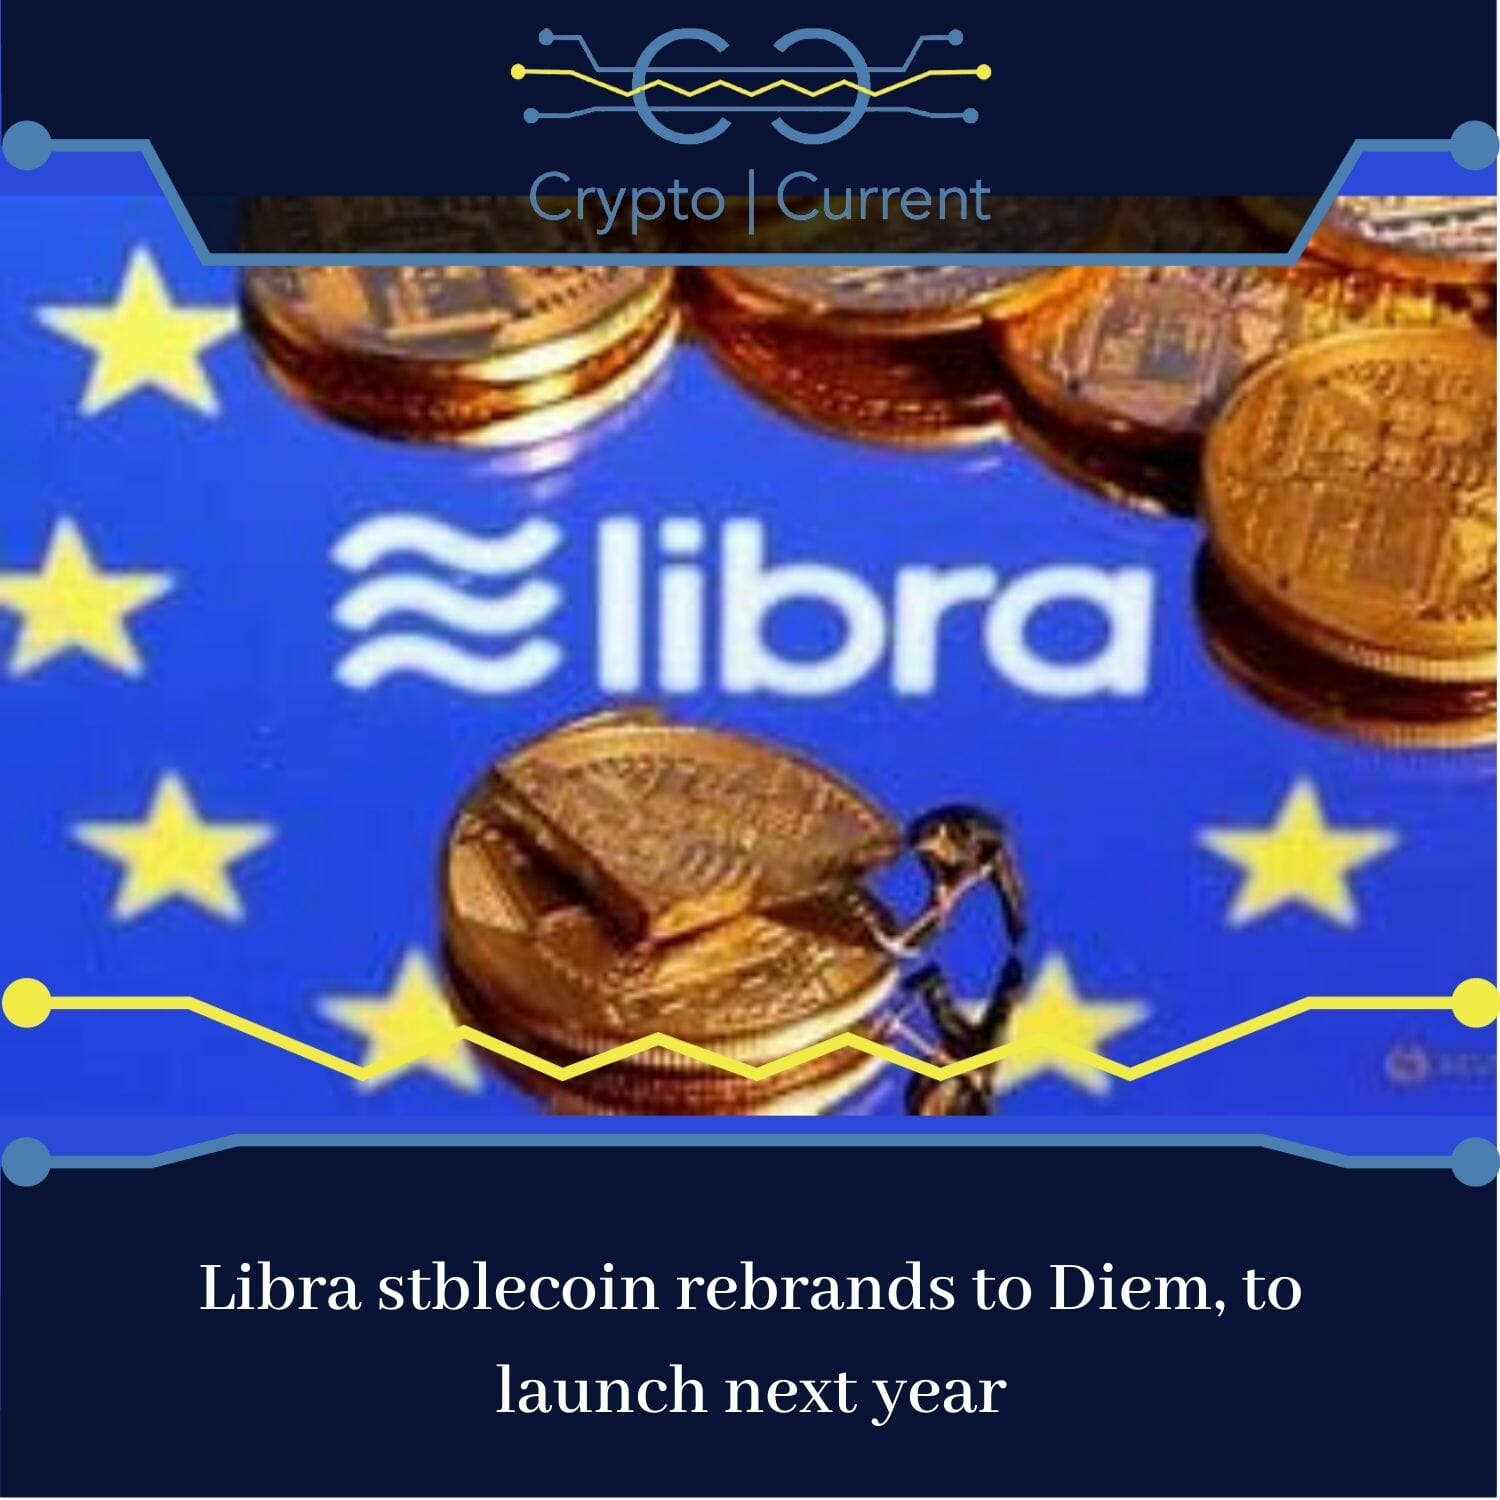 Libra stablecoin rebrands to Diem, to launch early next year